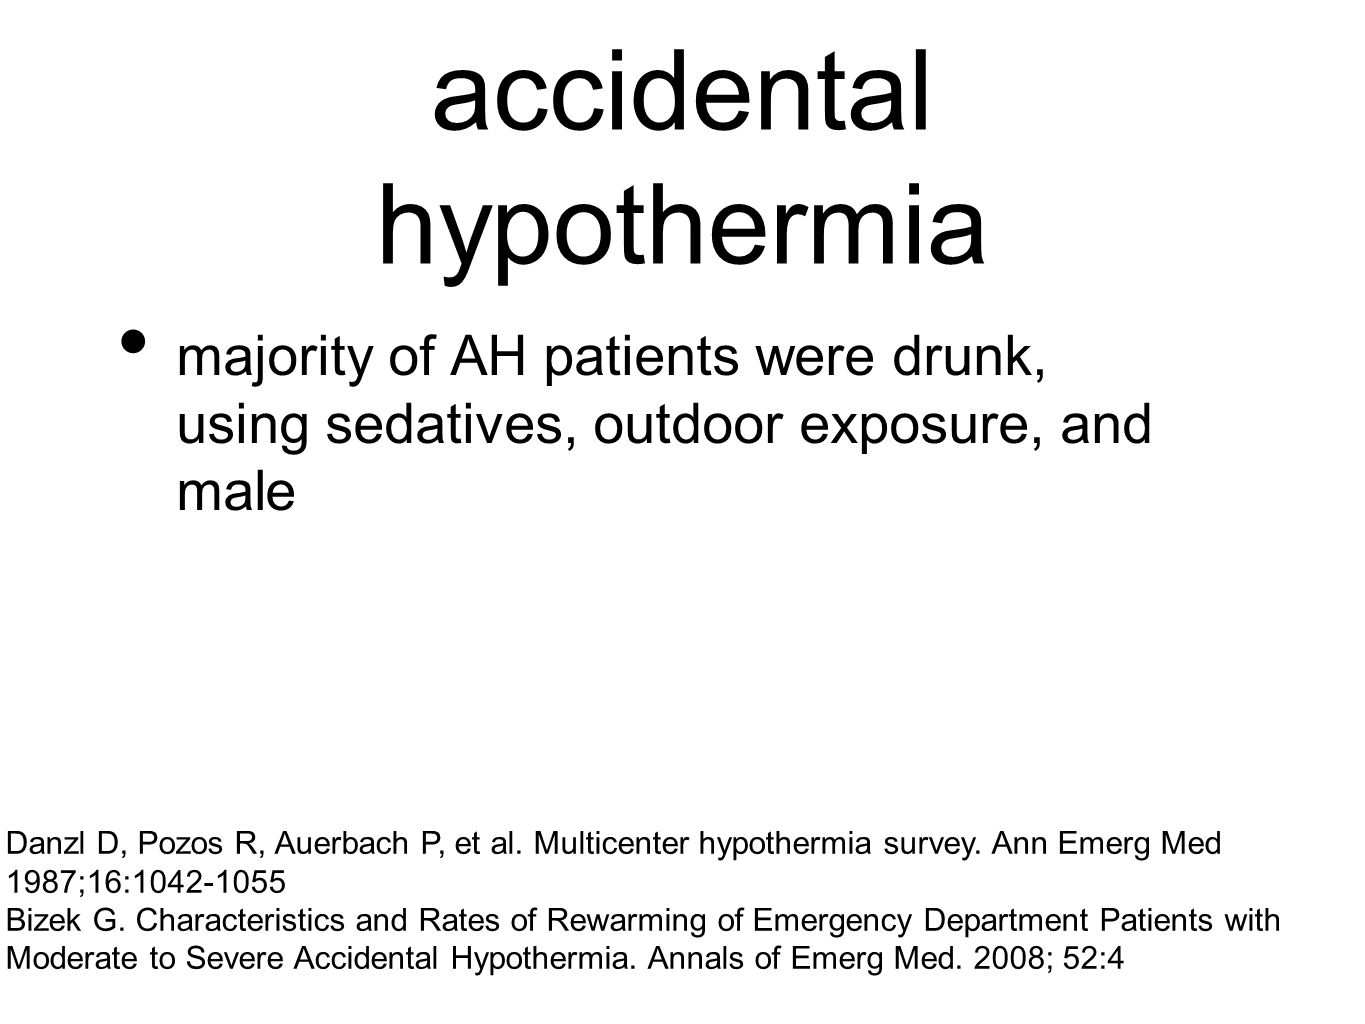 accidental hypothermia majority of AH patients were drunk, using sedatives, outdoor exposure, and male Danzl D, Pozos R, Auerbach P, et al. Multicente